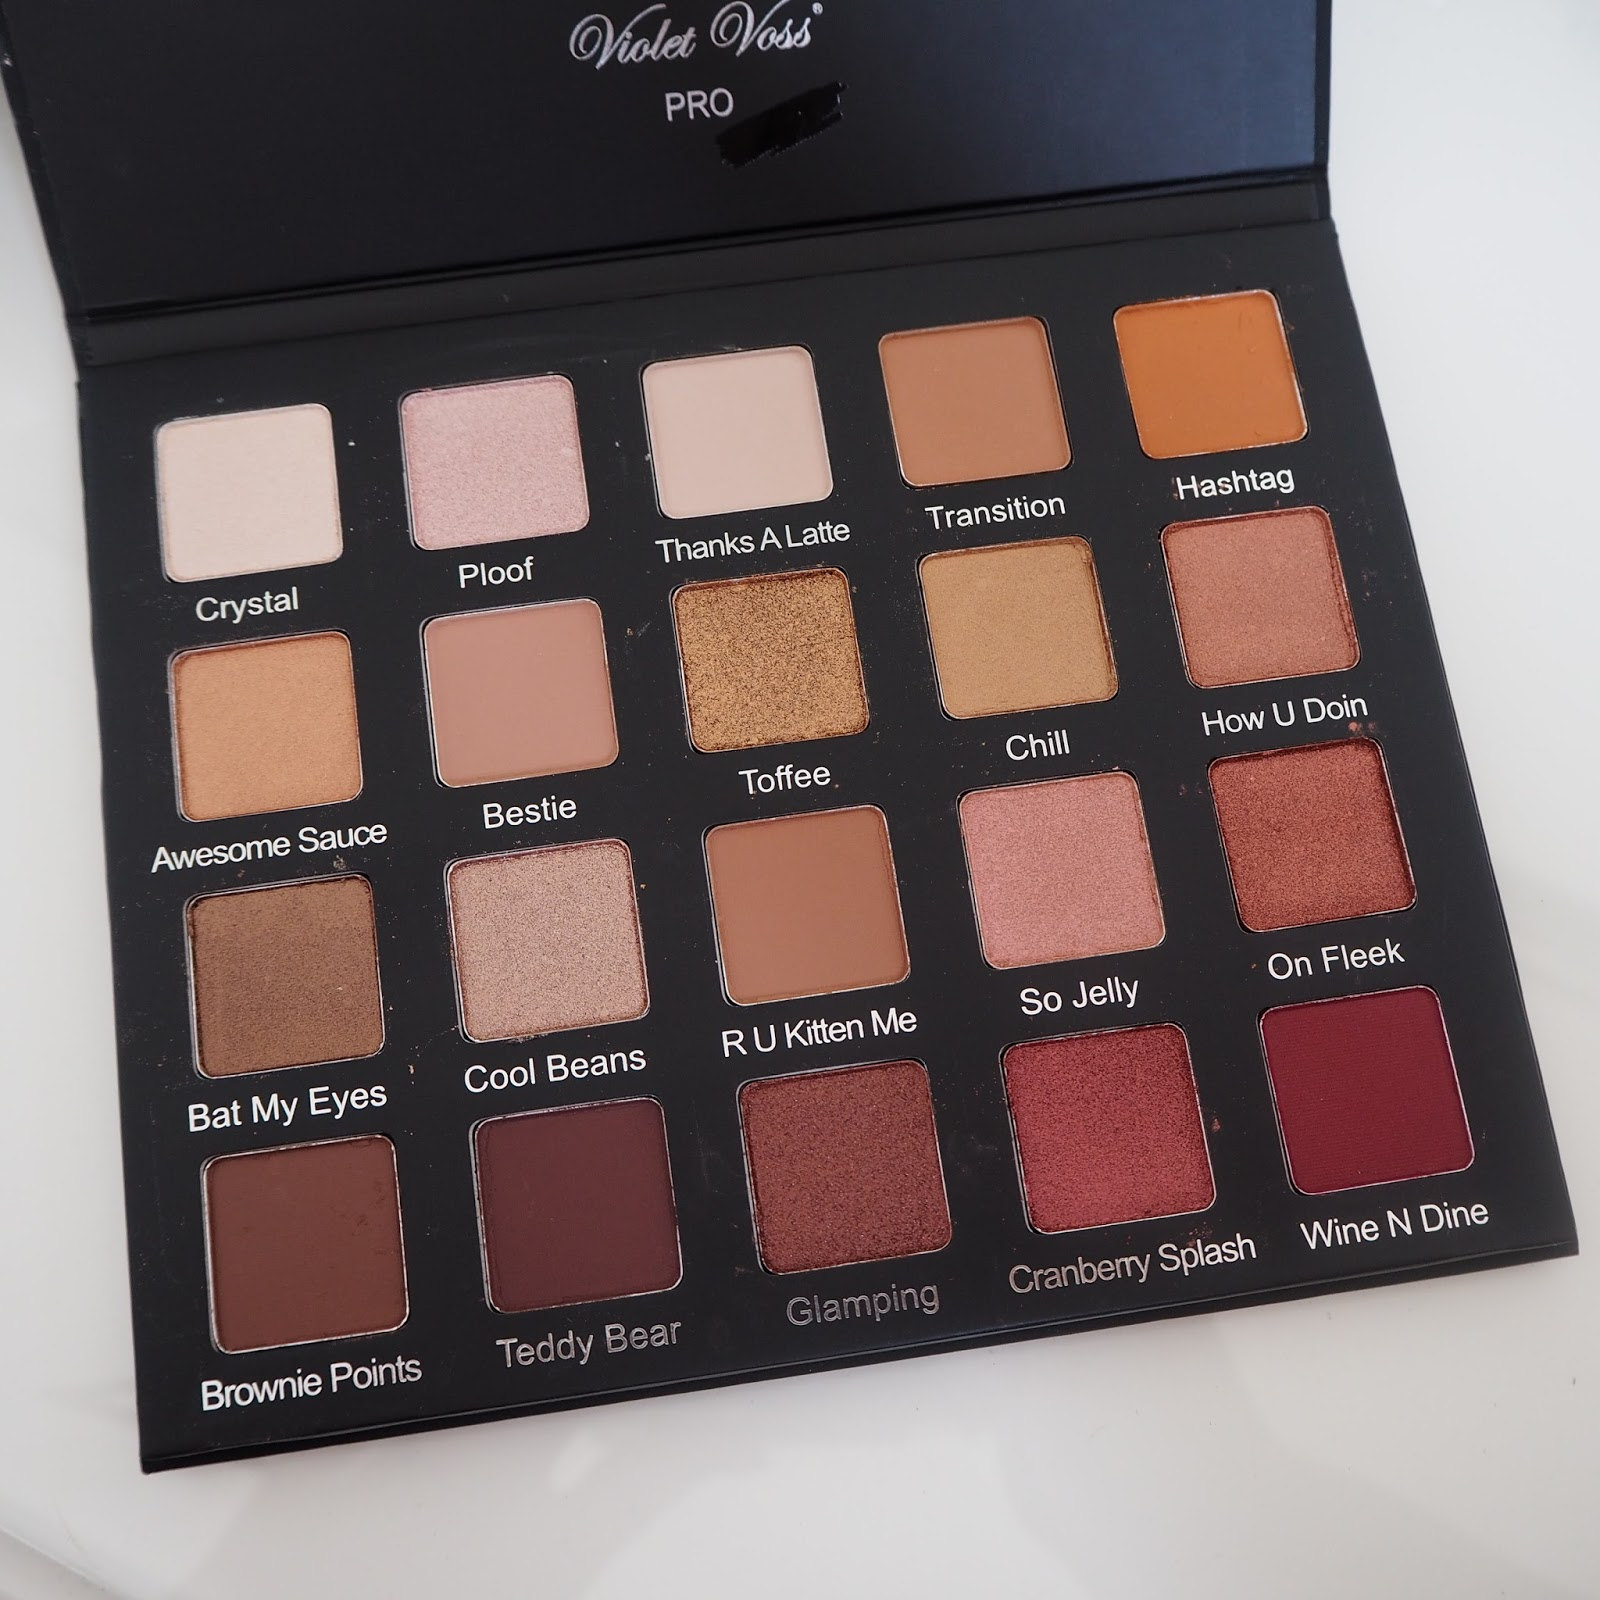 Violet Voss Holy Grail palette review